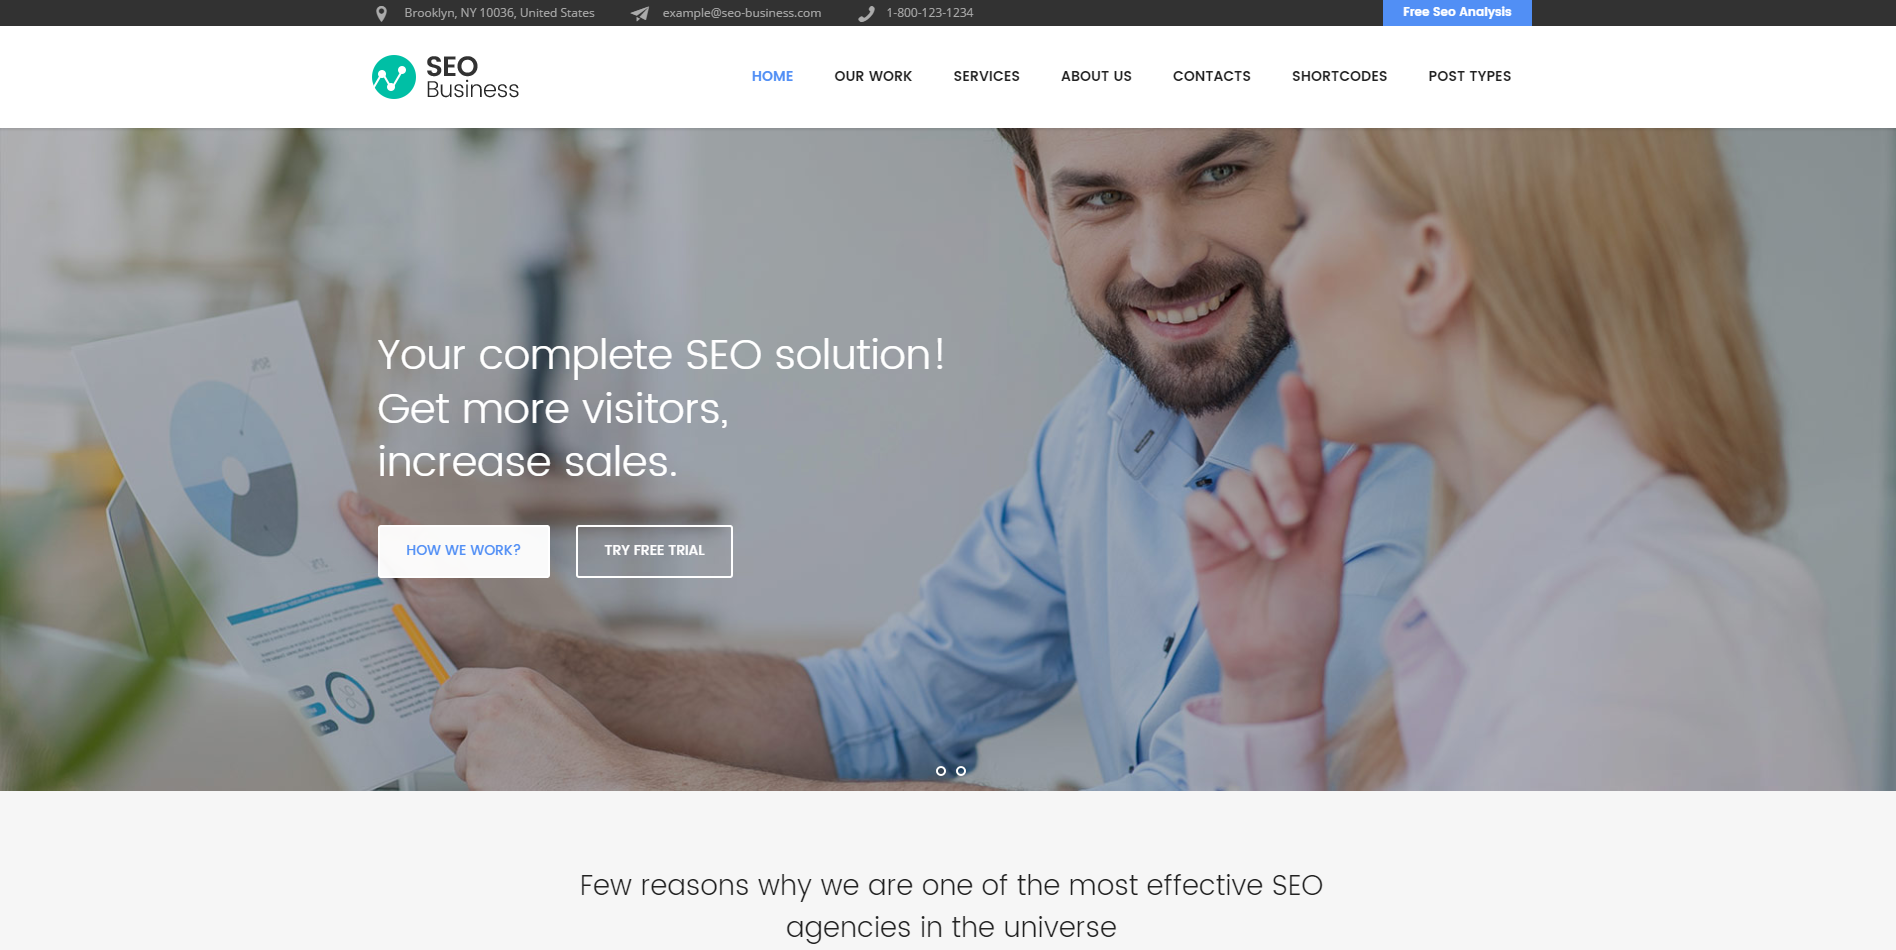 seo_business_featured_image - WPion